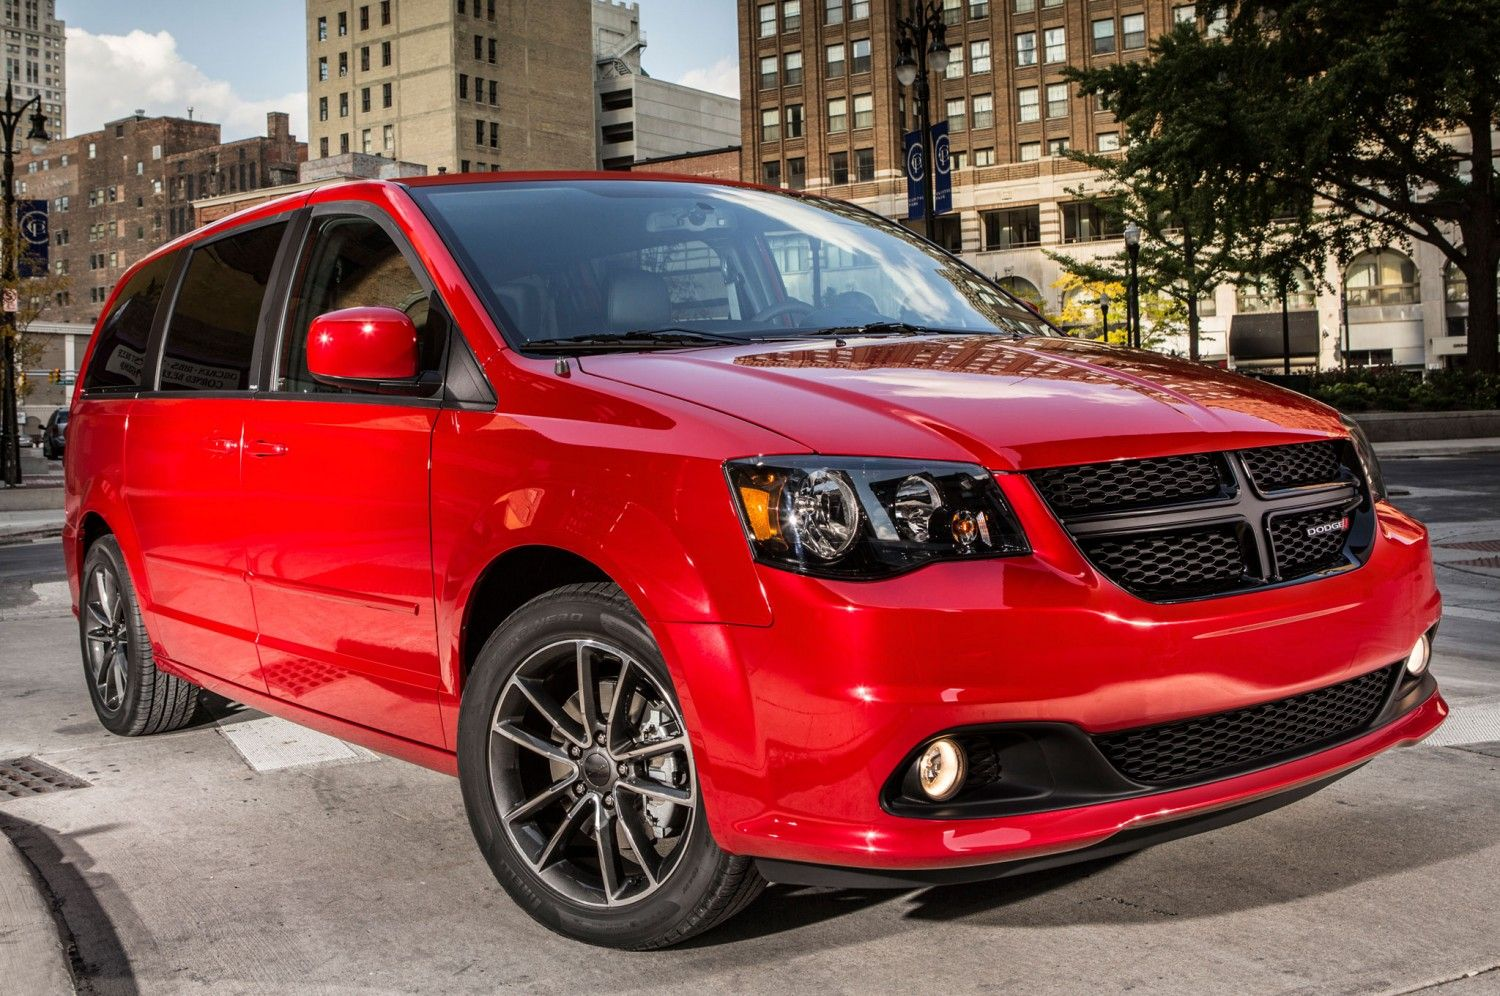 Html i admit it this dodge caravan looks pretty good never thought i d